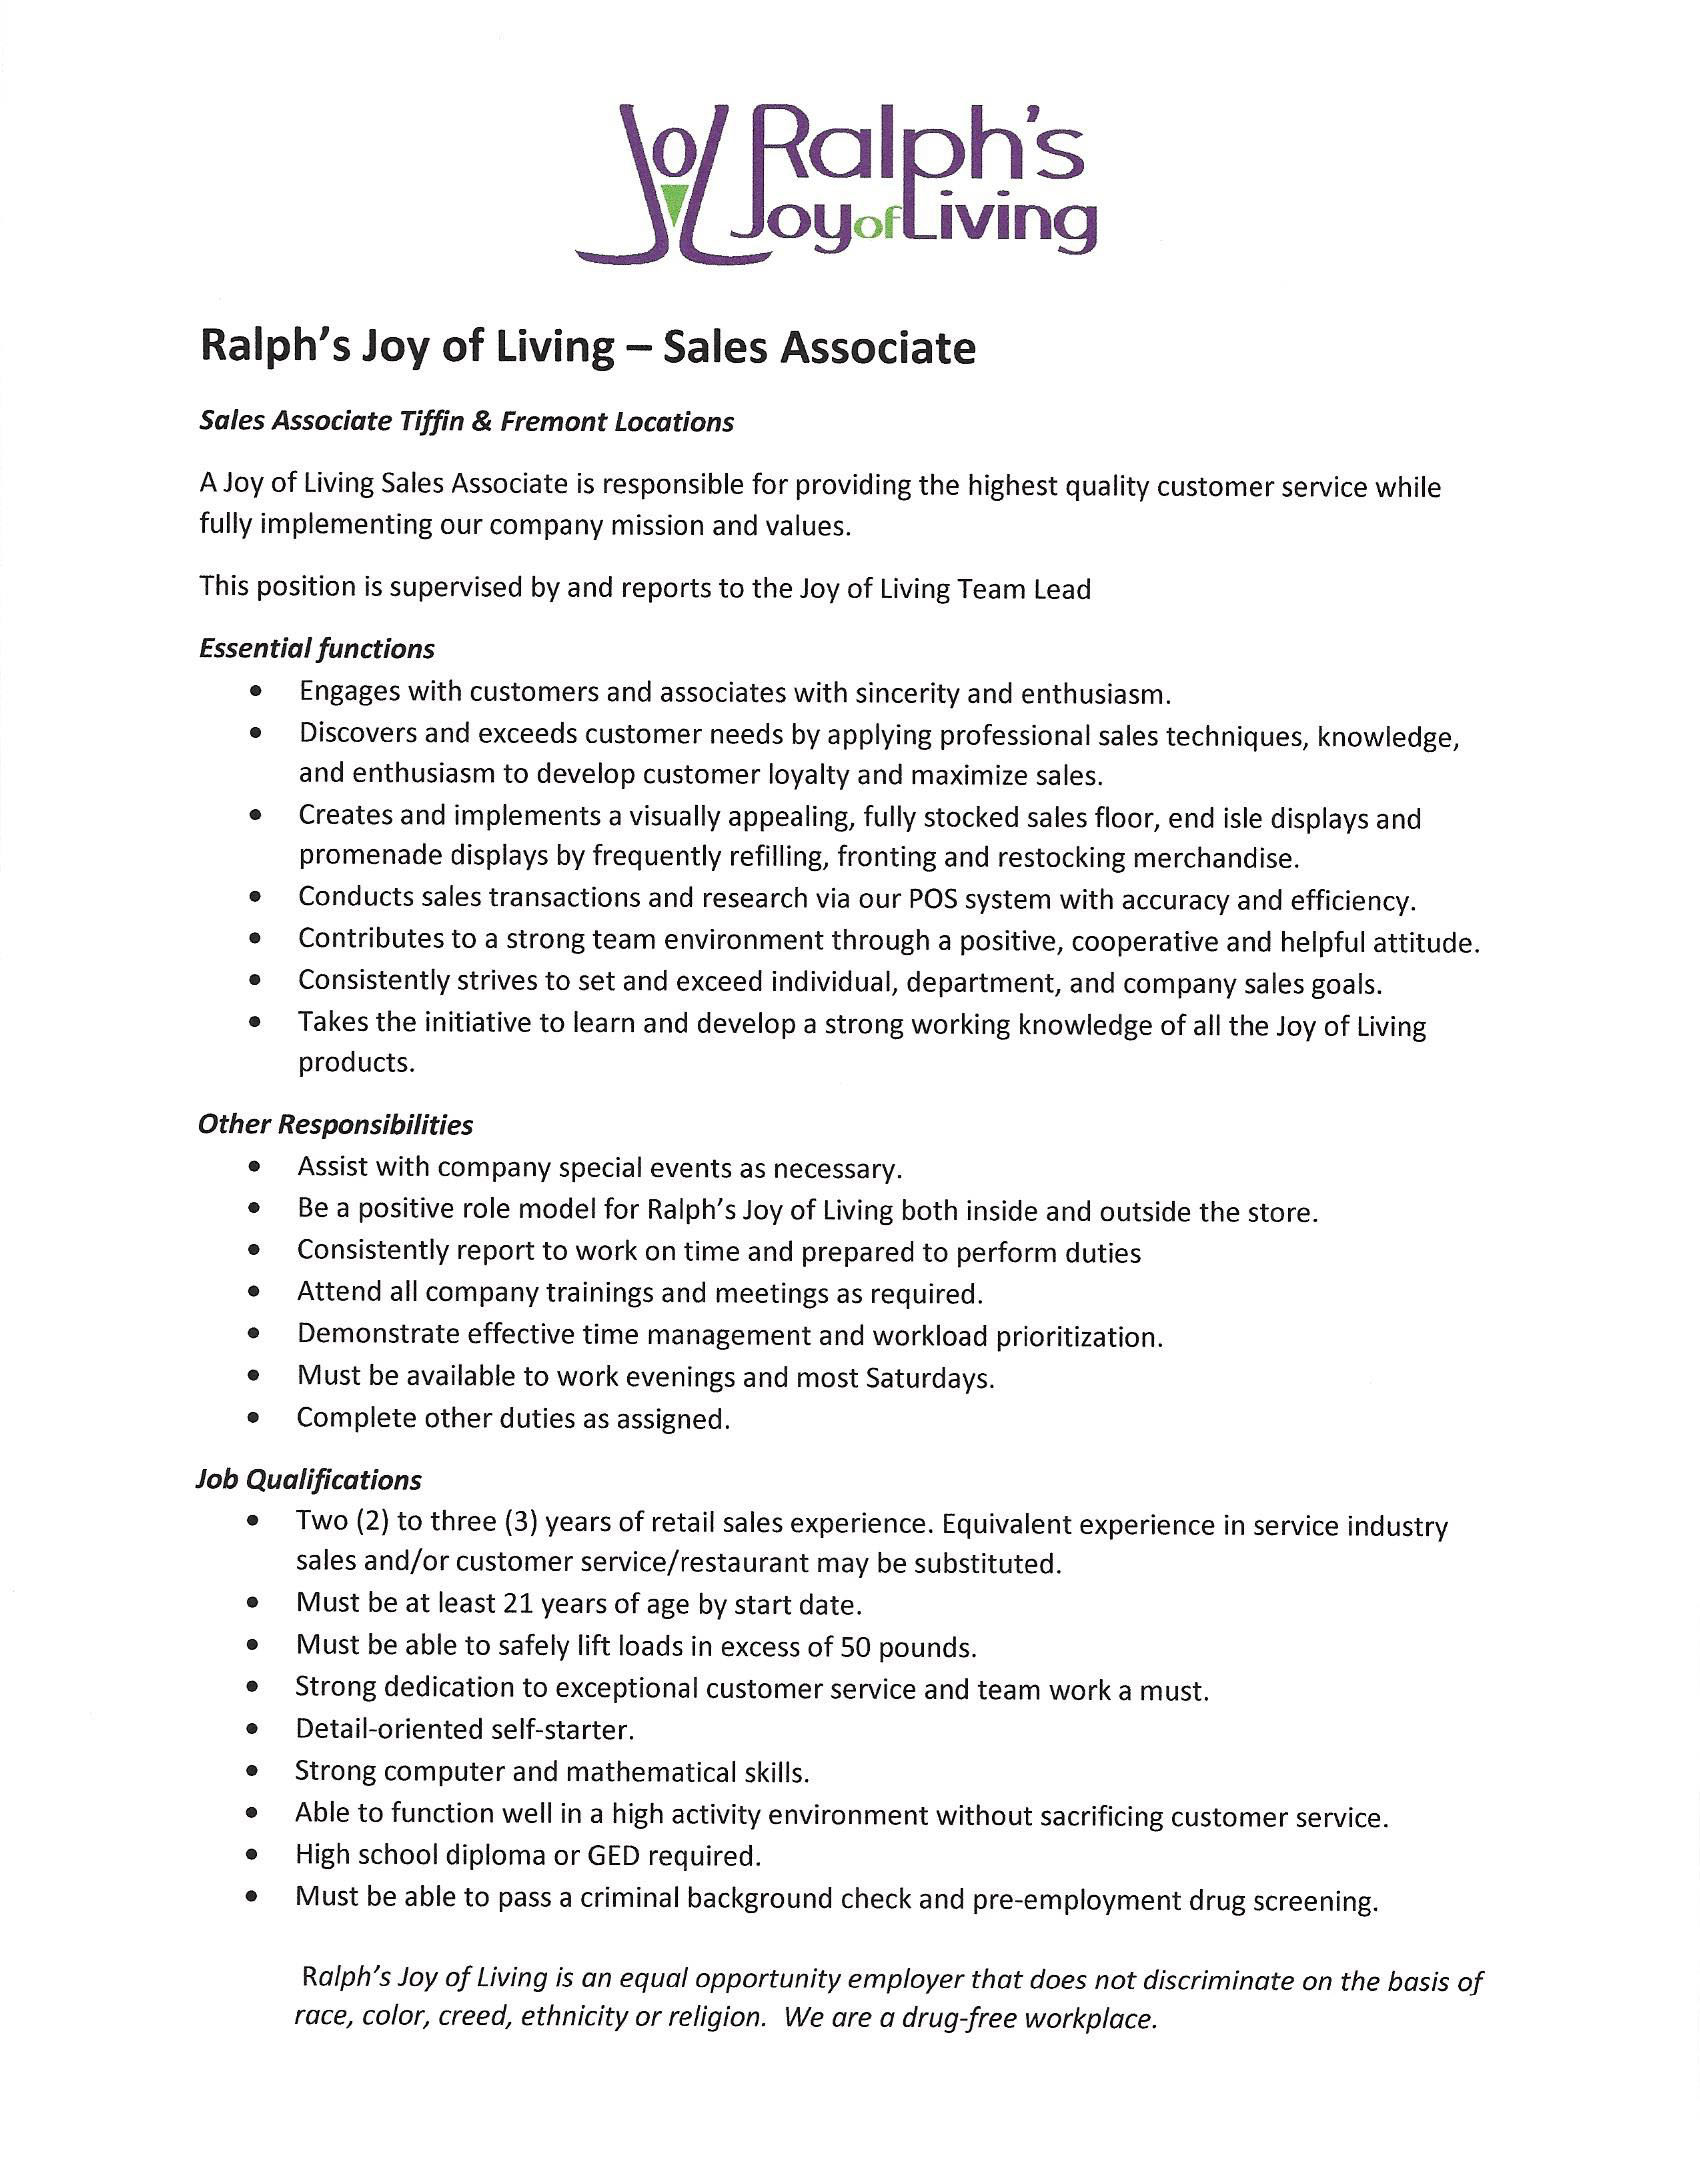 ralph's joy of living - careers - home appliances, kitchen